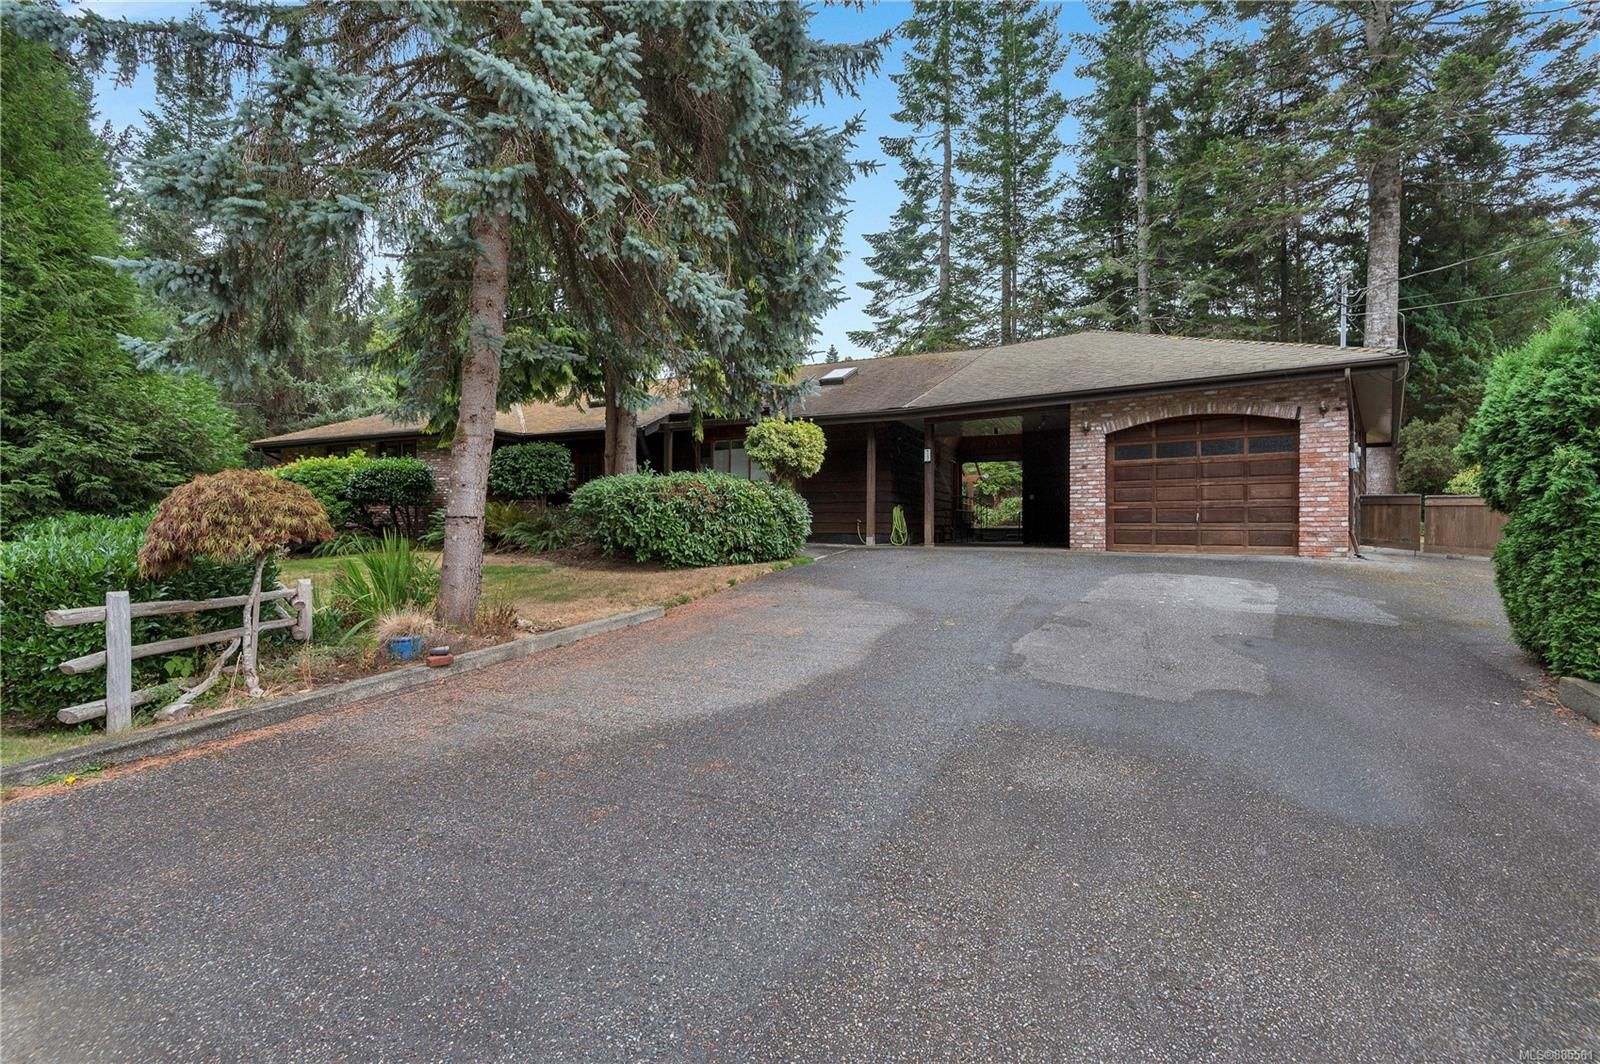 Main Photo: 73 Redonda Way in : CR Campbell River South House for sale (Campbell River)  : MLS®# 885561